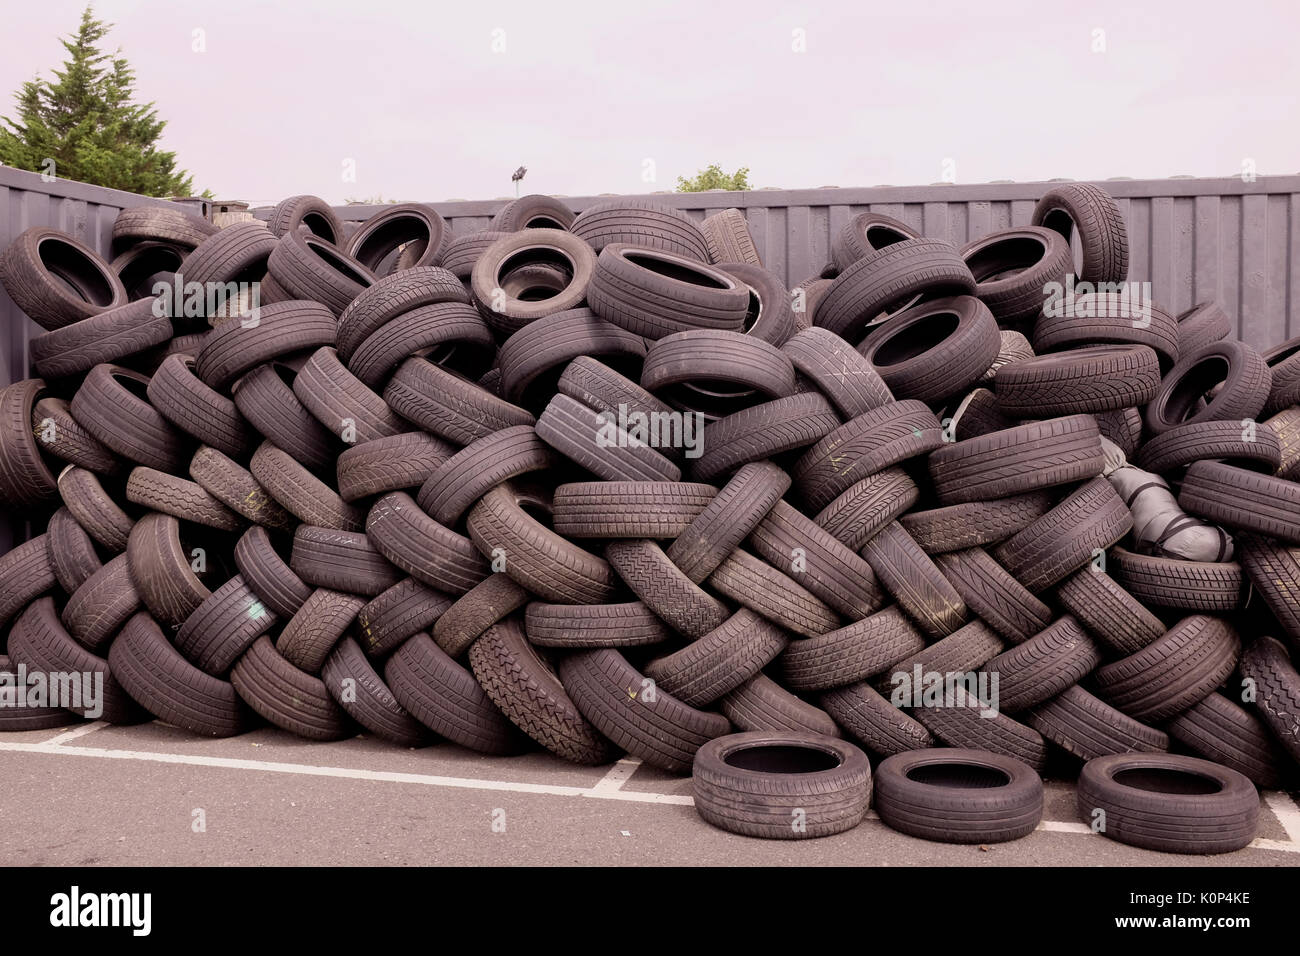 used vehicle tyres ready for recycling city of canterbury in kent county uk august 2017 - Stock Image